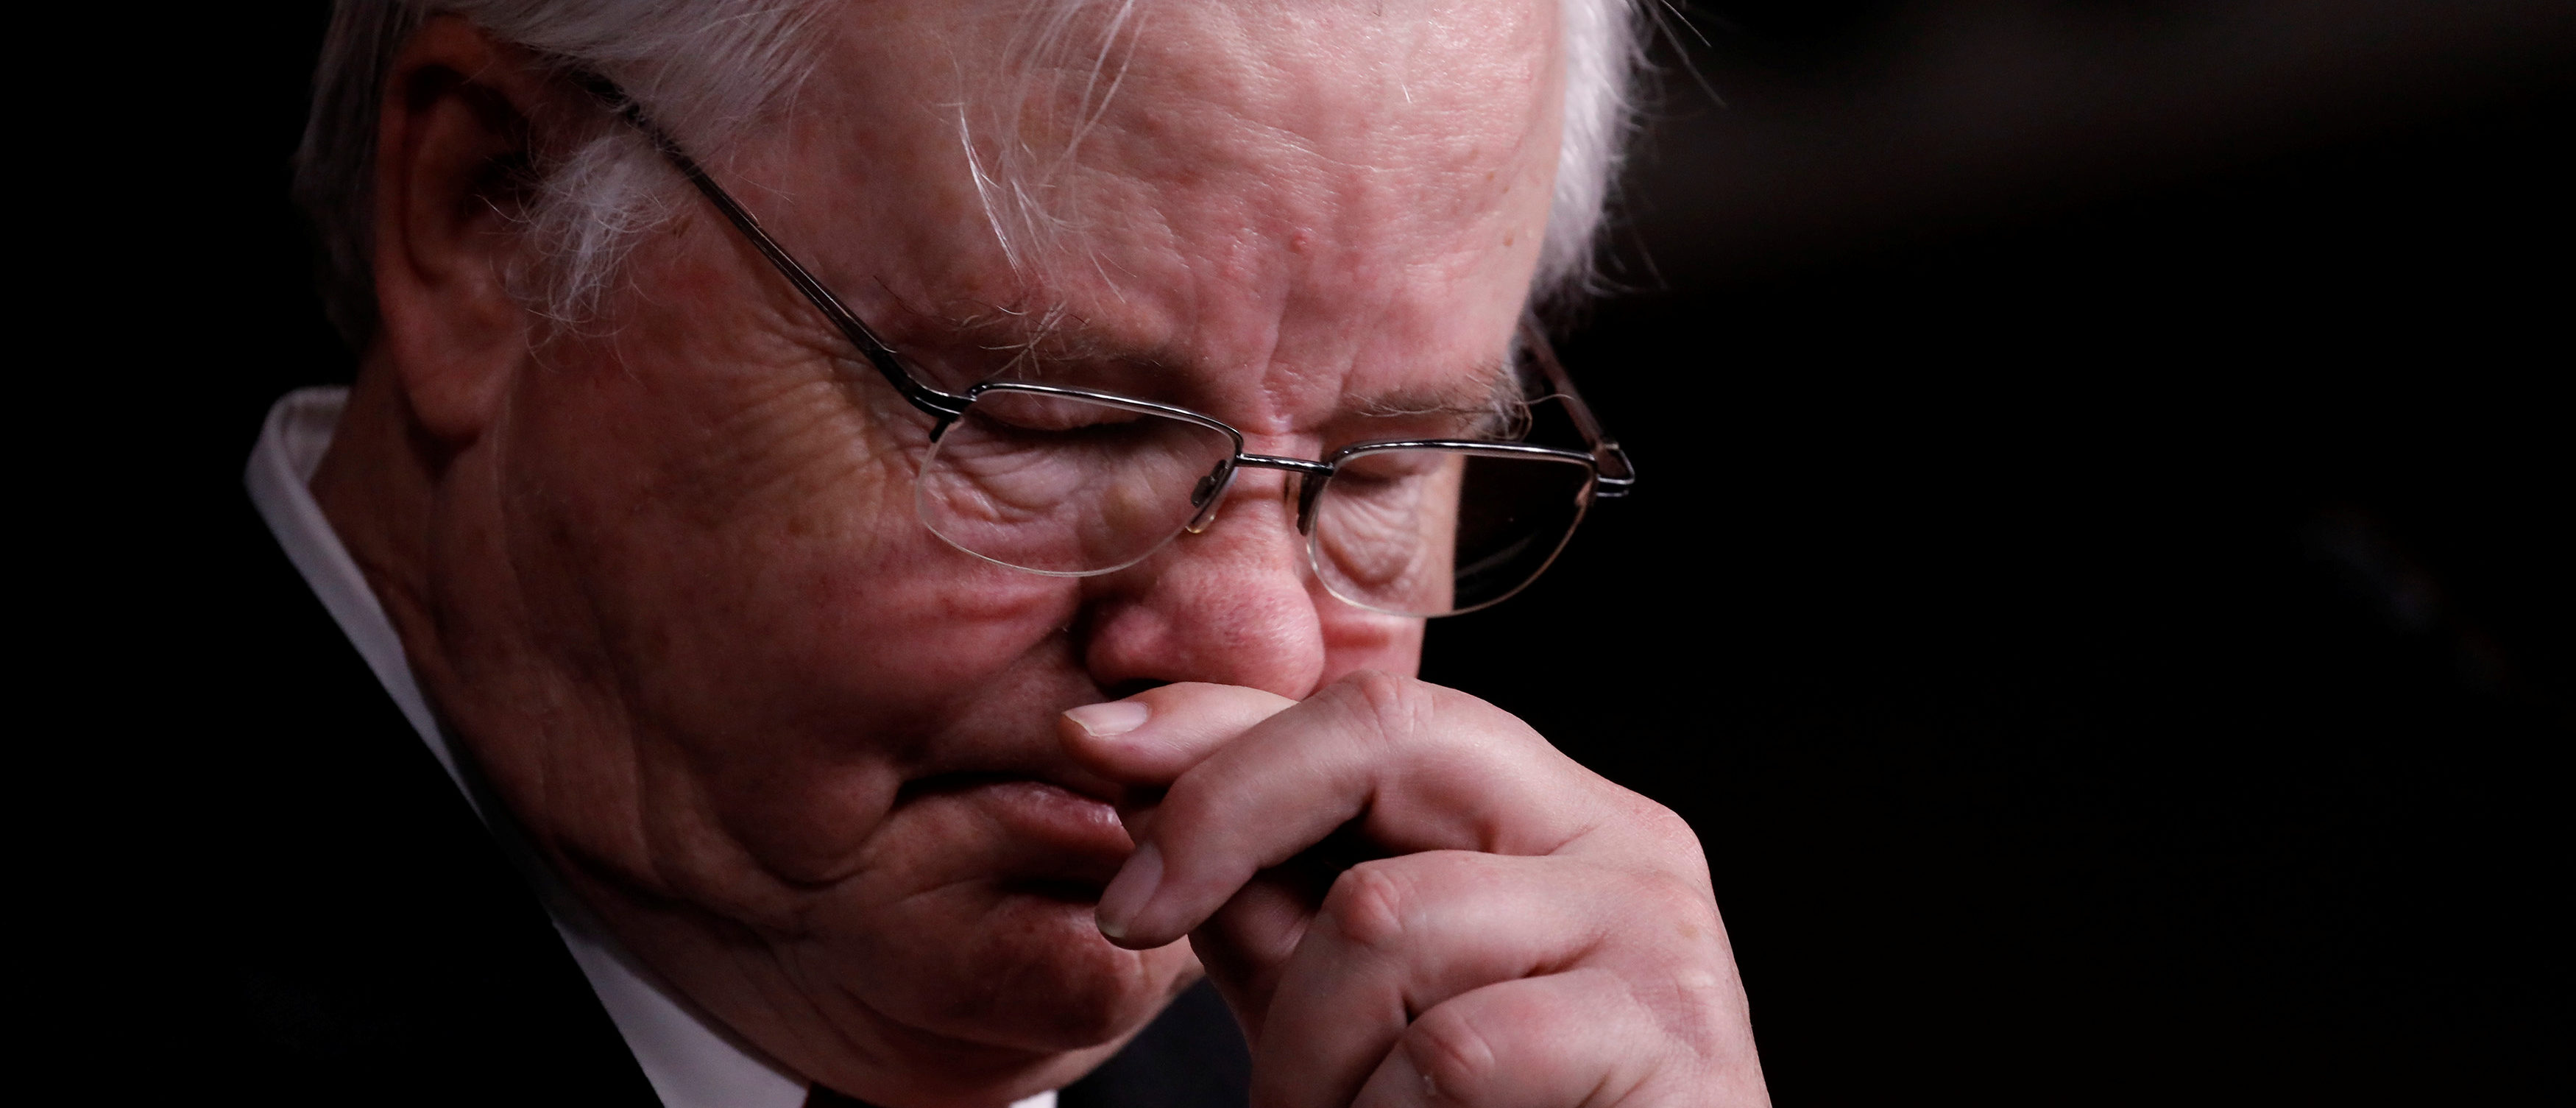 Rep. Joe Barton (R-TX), manager of the Republican Congressional Baseball team, speaks at a news conference about the recent shooting in Alexandria, Virginia, on Capitol Hill in Washington, U.S., June 14, 2017. REUTERS/Aaron P. Bernstein